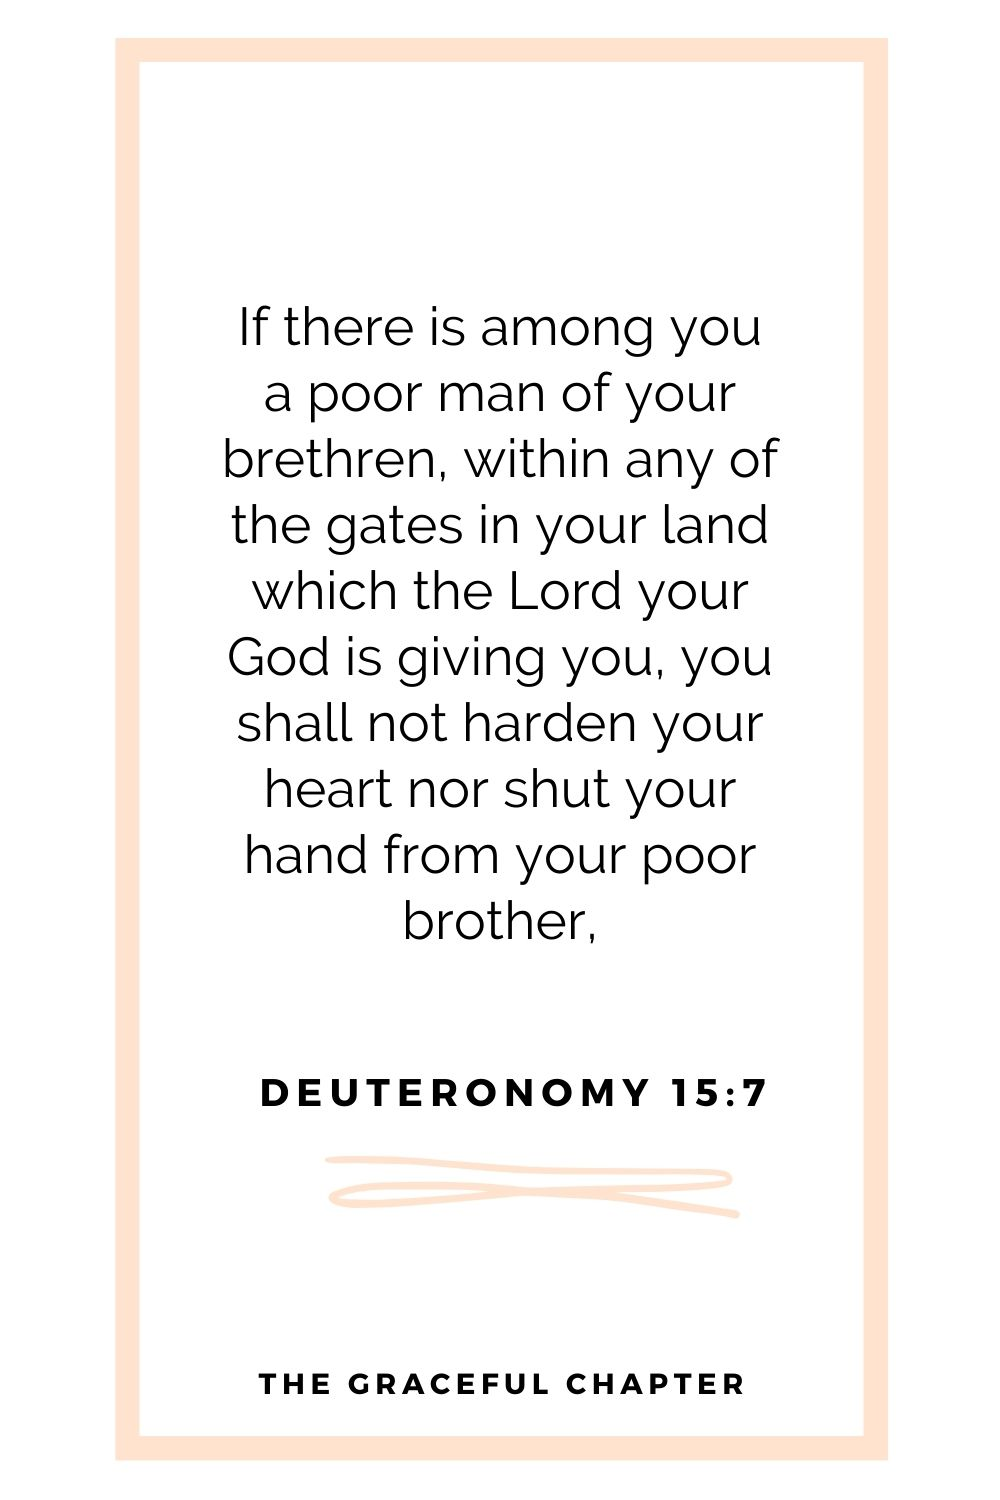 If there is among you a poor man of your brethren, within any of the  gates in your land which the Lord your God is giving you, you shall not harden your heart nor shut your hand from your poor brother, Deuteronomy 15:7